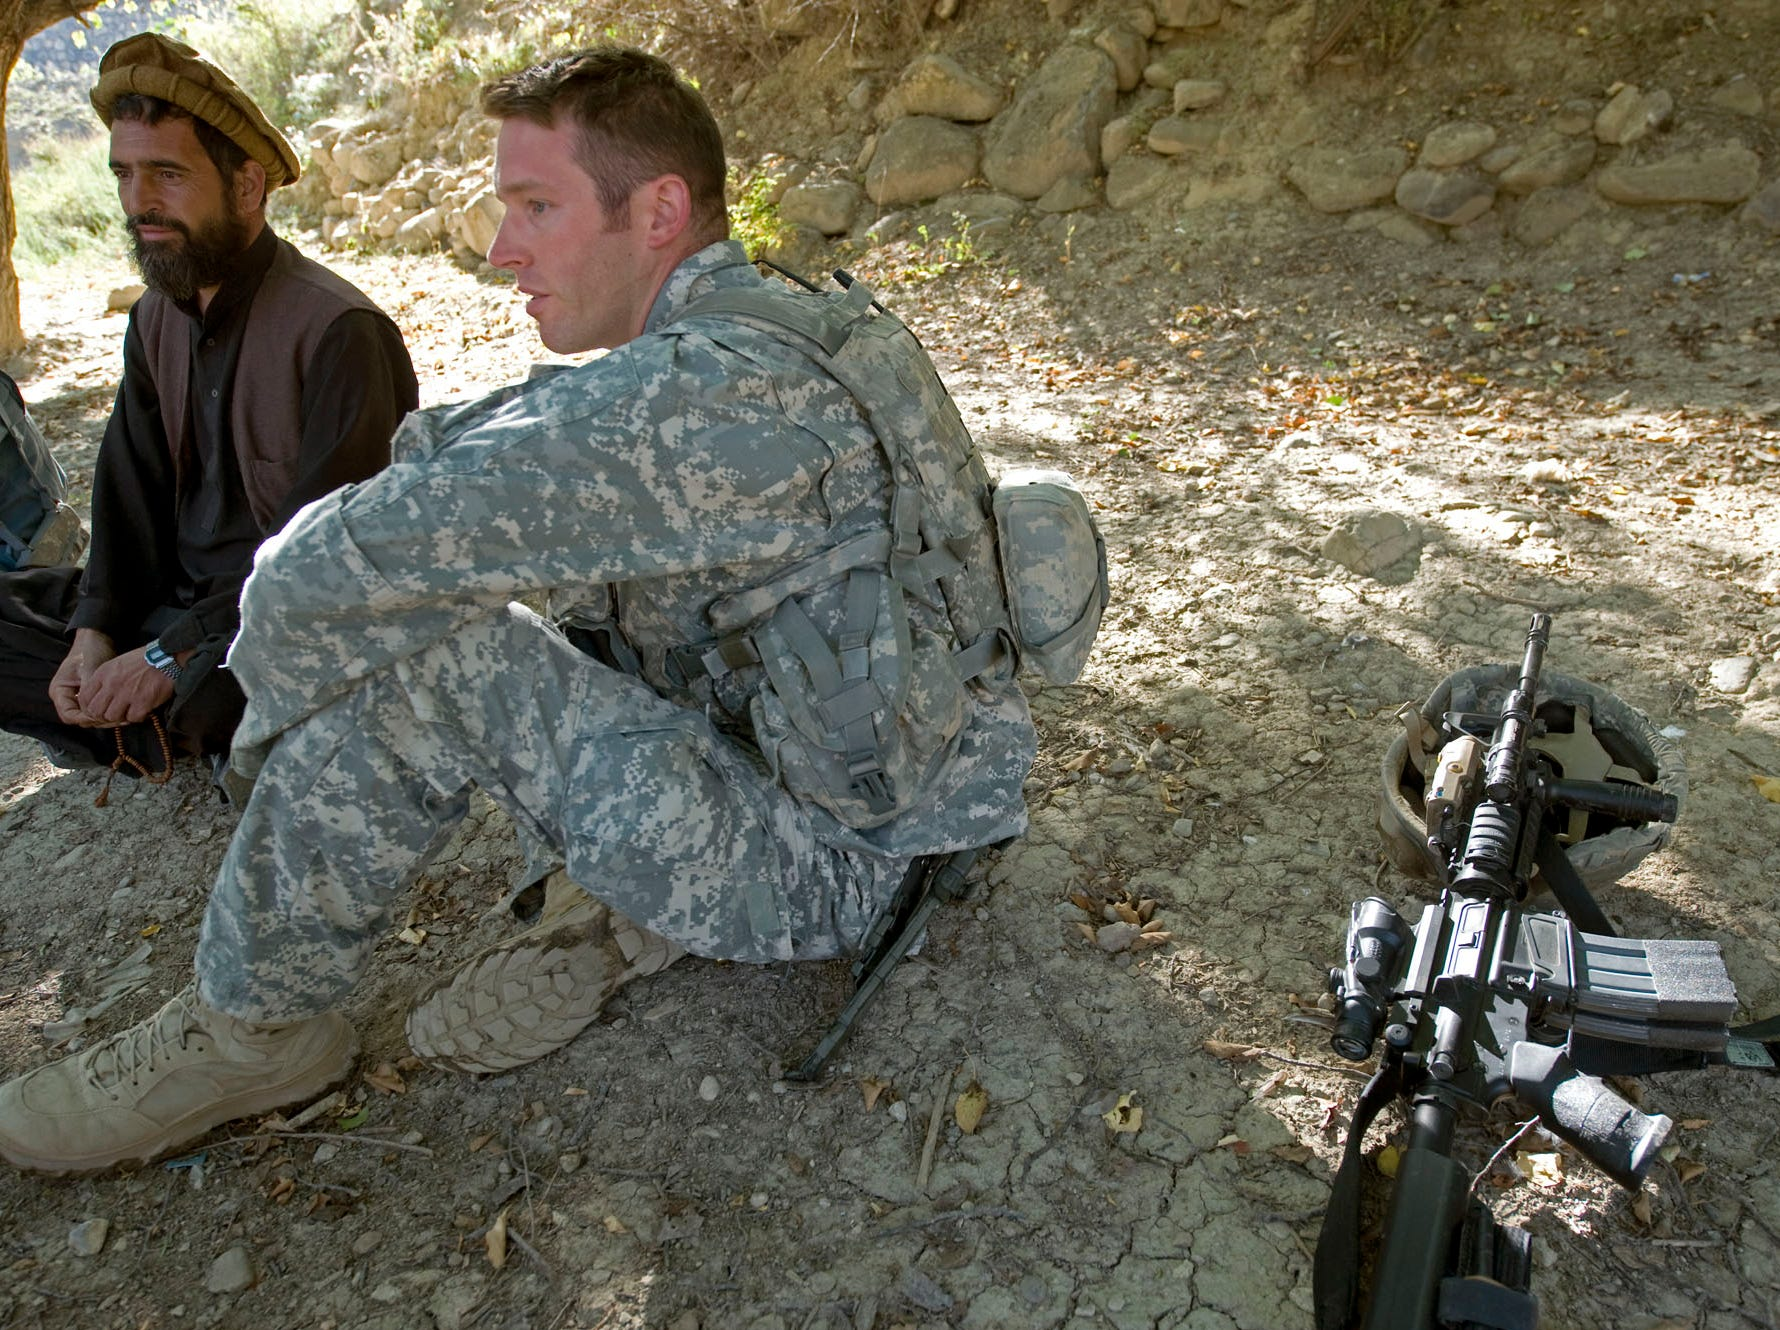 Vermont National Guard Sgt. 1st Class Jay Pedro of Woodstock, Vt., talks with a villager in Kuzah Shegah on Tuesday morning, September 21, 2010, looking for information about insurgent activity in the area. A spotter was seen in the village as Combat Outpost Herrera was being attacked by mortar fire.